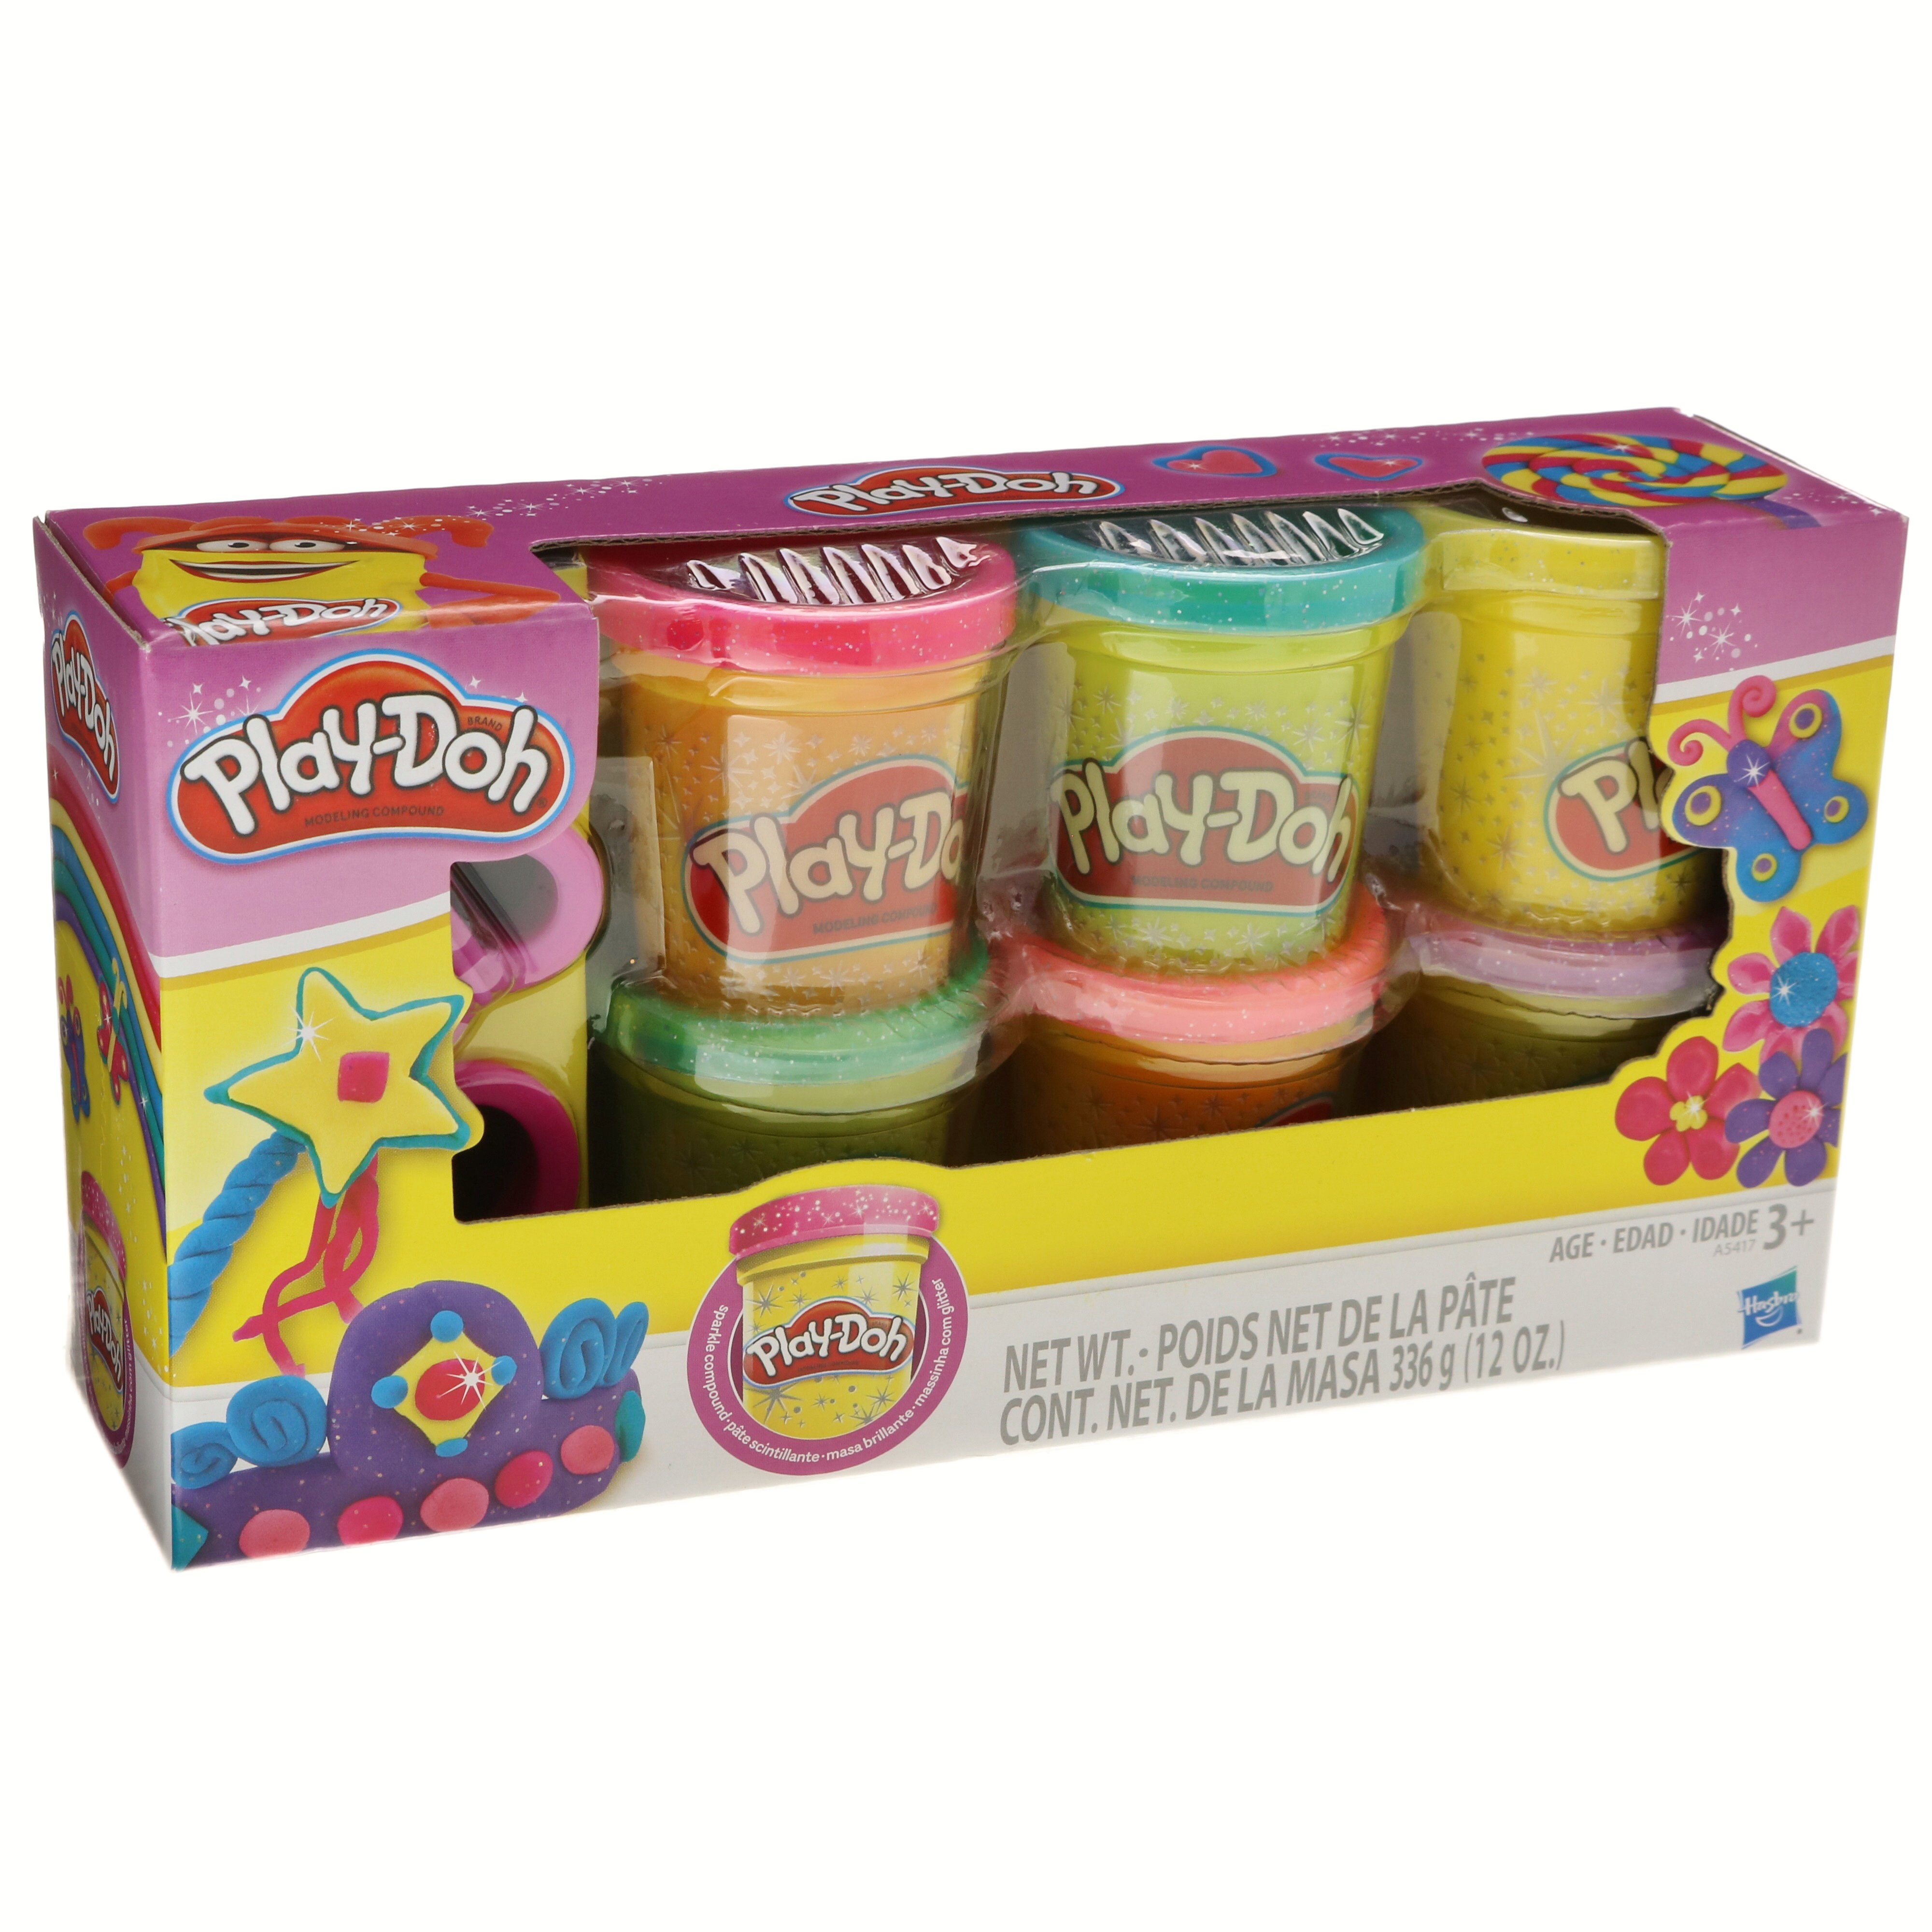 Play Doh Sparkle Compound Collection Shop Clay At H E B